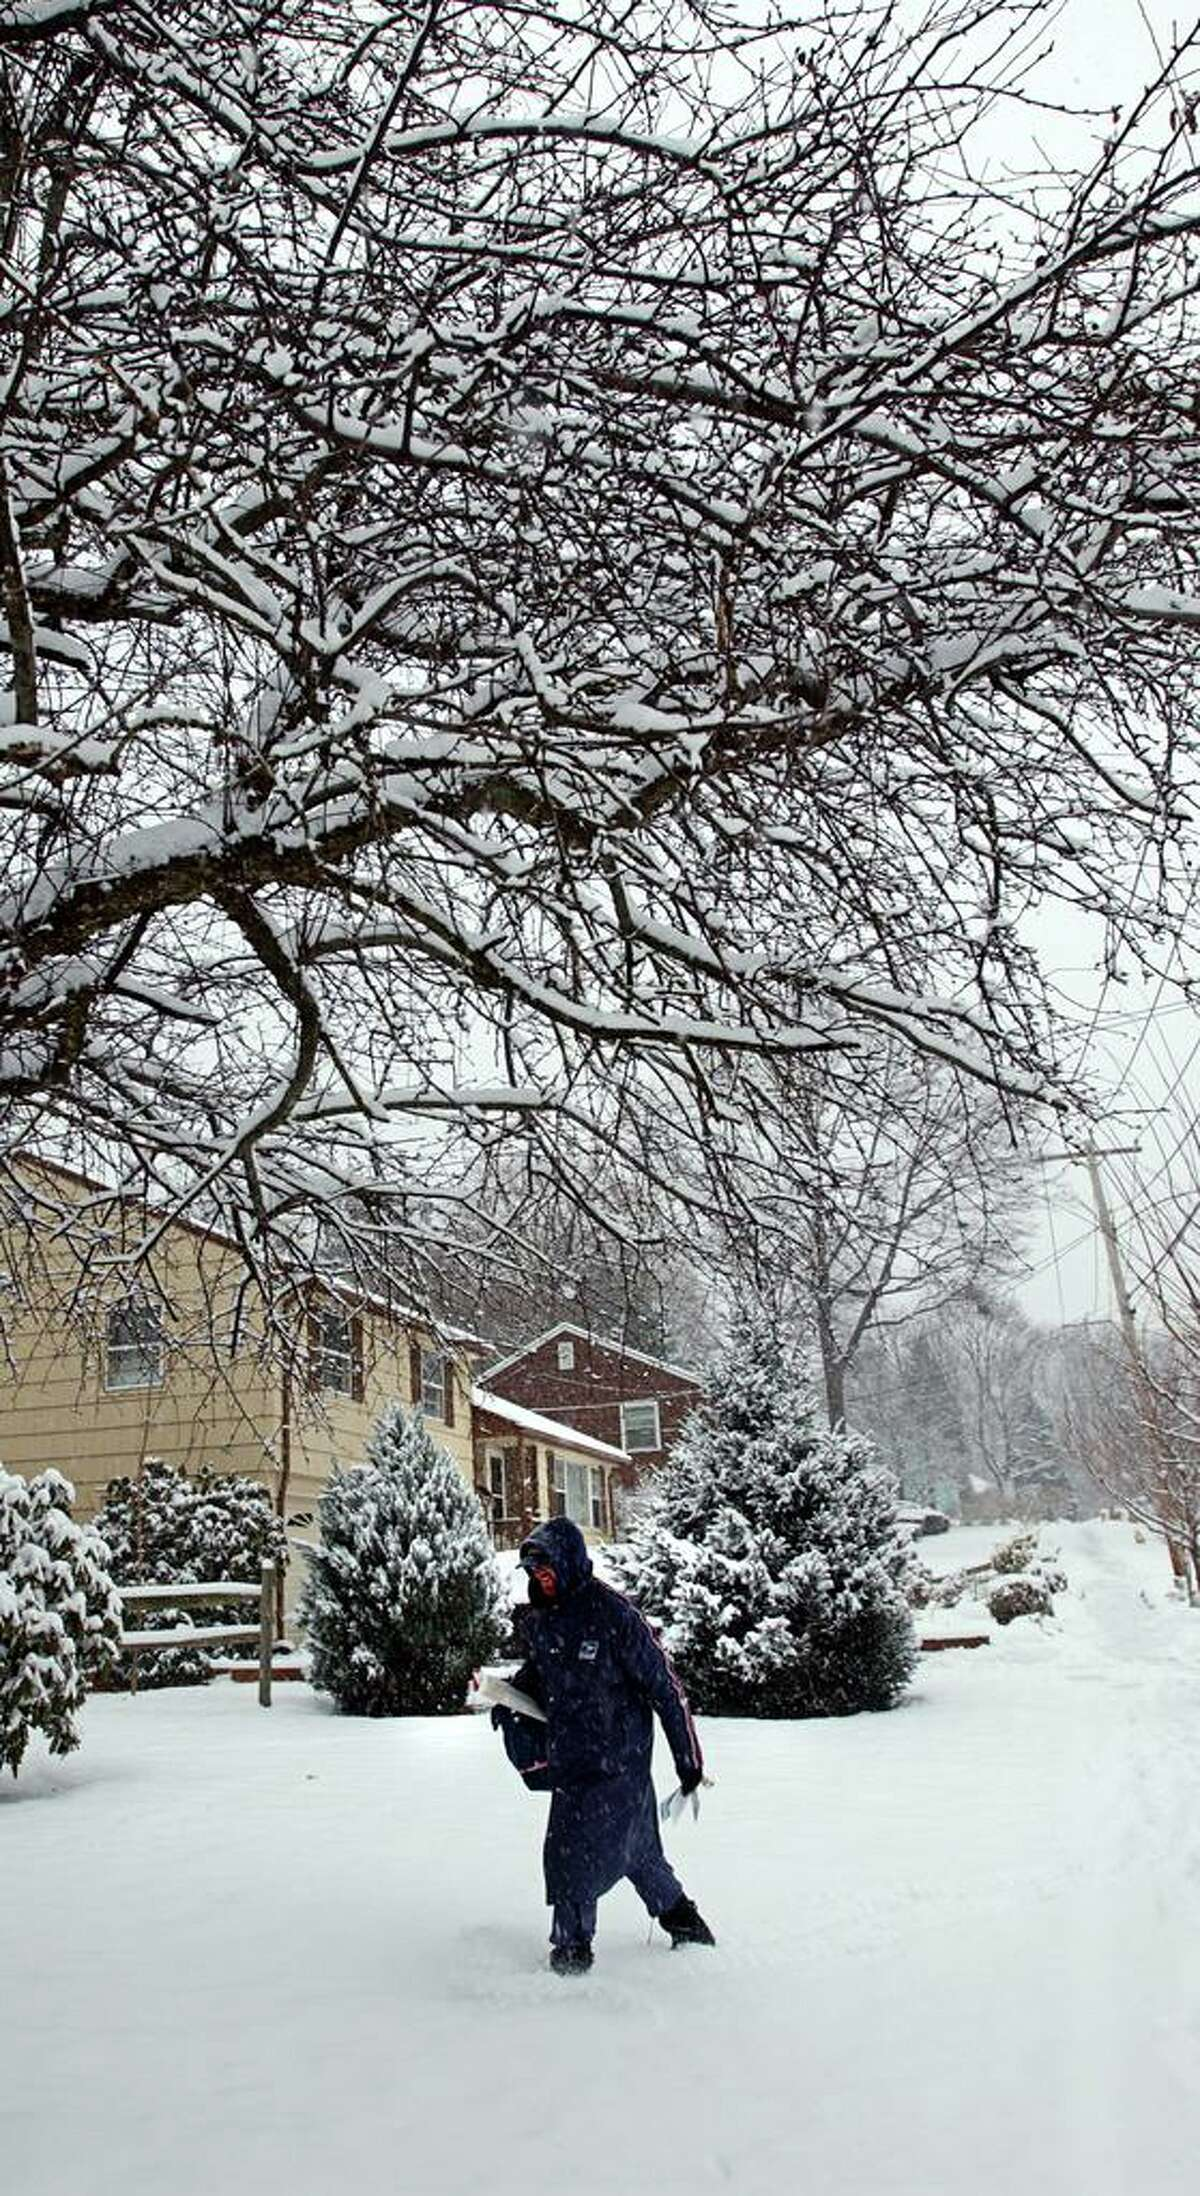 The weather is nice now but according to change of address request forms from the United States Postal Service, between March and June 2020, there were 325 change of address requests from outside Connecticut to Hamden. The means there could be some new residents who will meet a New England winter this year.